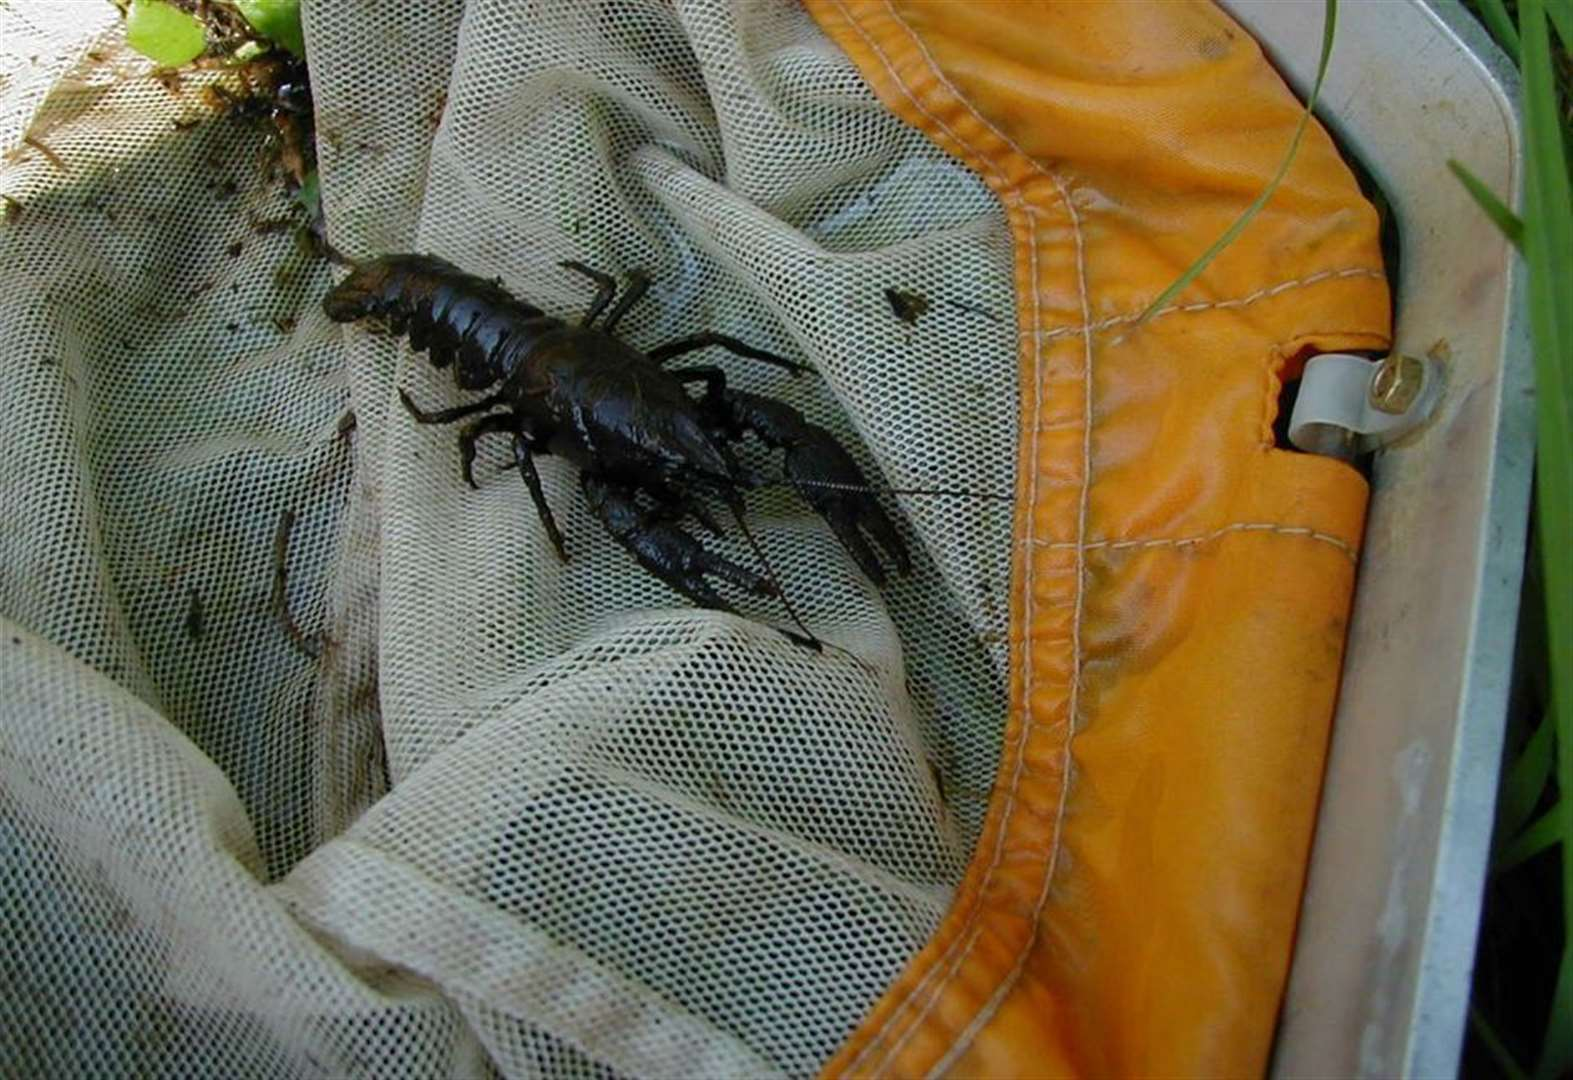 Hundreds of crayfish will be relocated from the River Witham near Grantham into a refuge to boost population